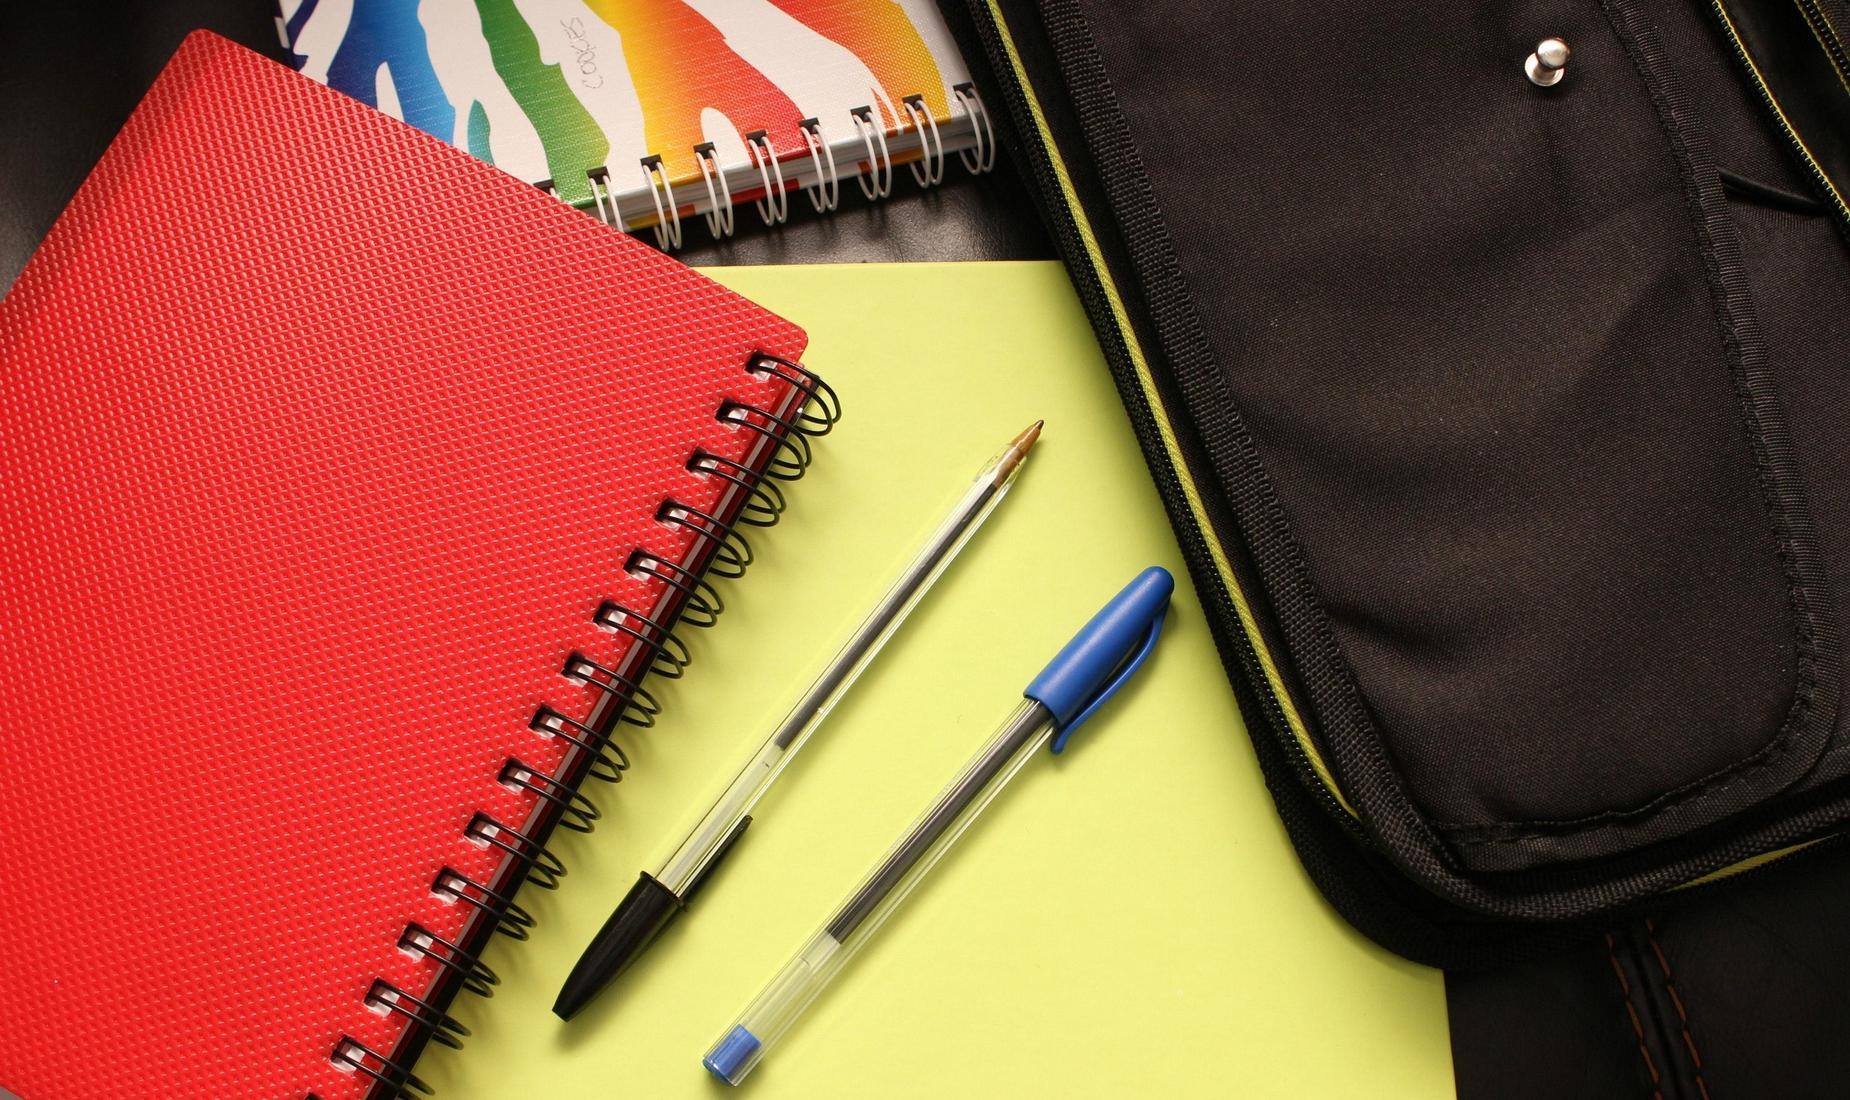 School notebooks and learning supplies